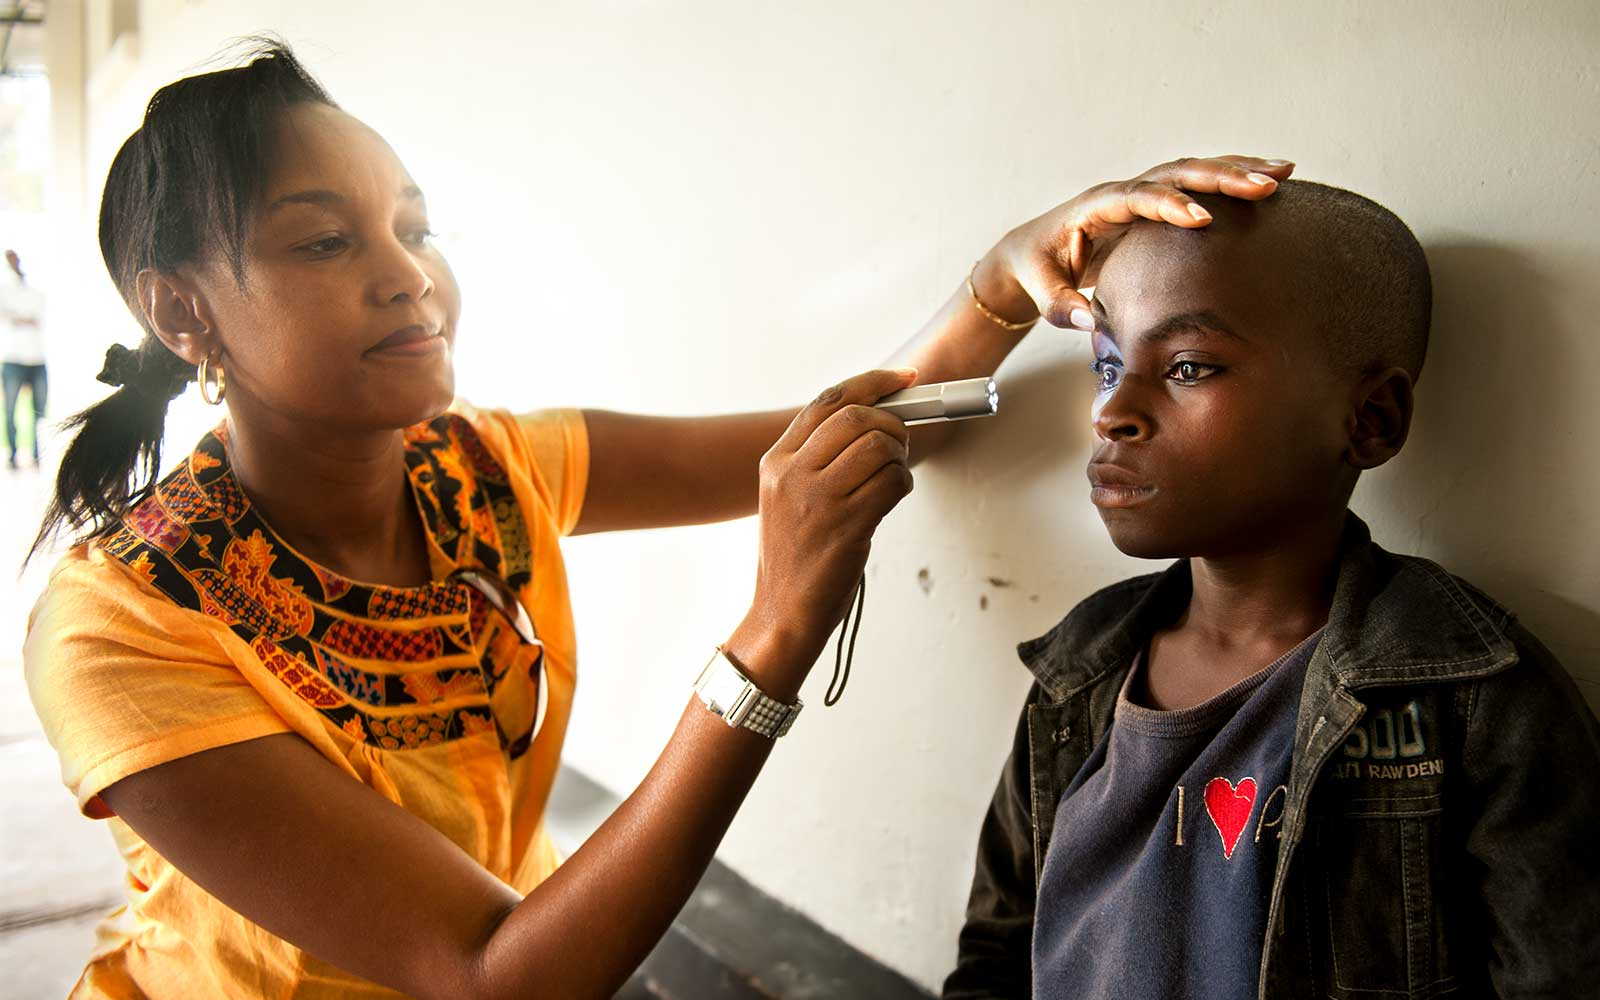 In five years, Rwanda has carried out 2.4 million eye screenings, and over 1.2 million basic treatments have been provided. Image credit:  Clearly